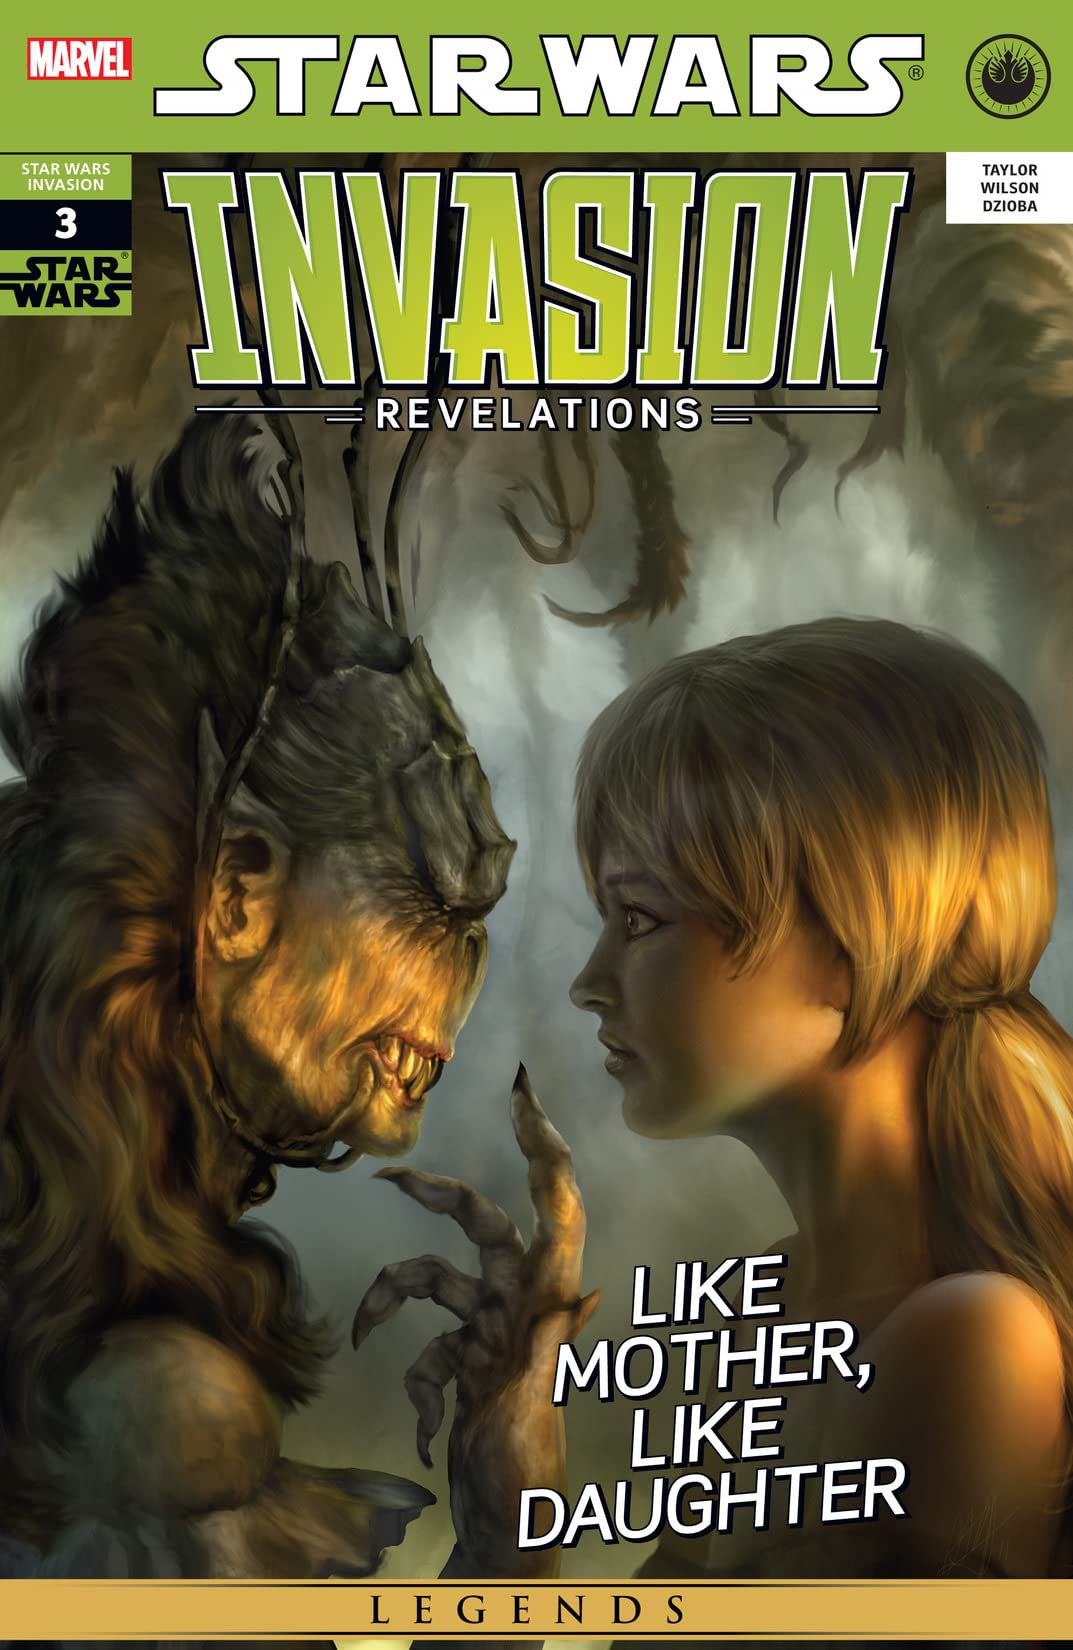 Star Wars: Invasion - Revelations (2011) #3 (of 5)